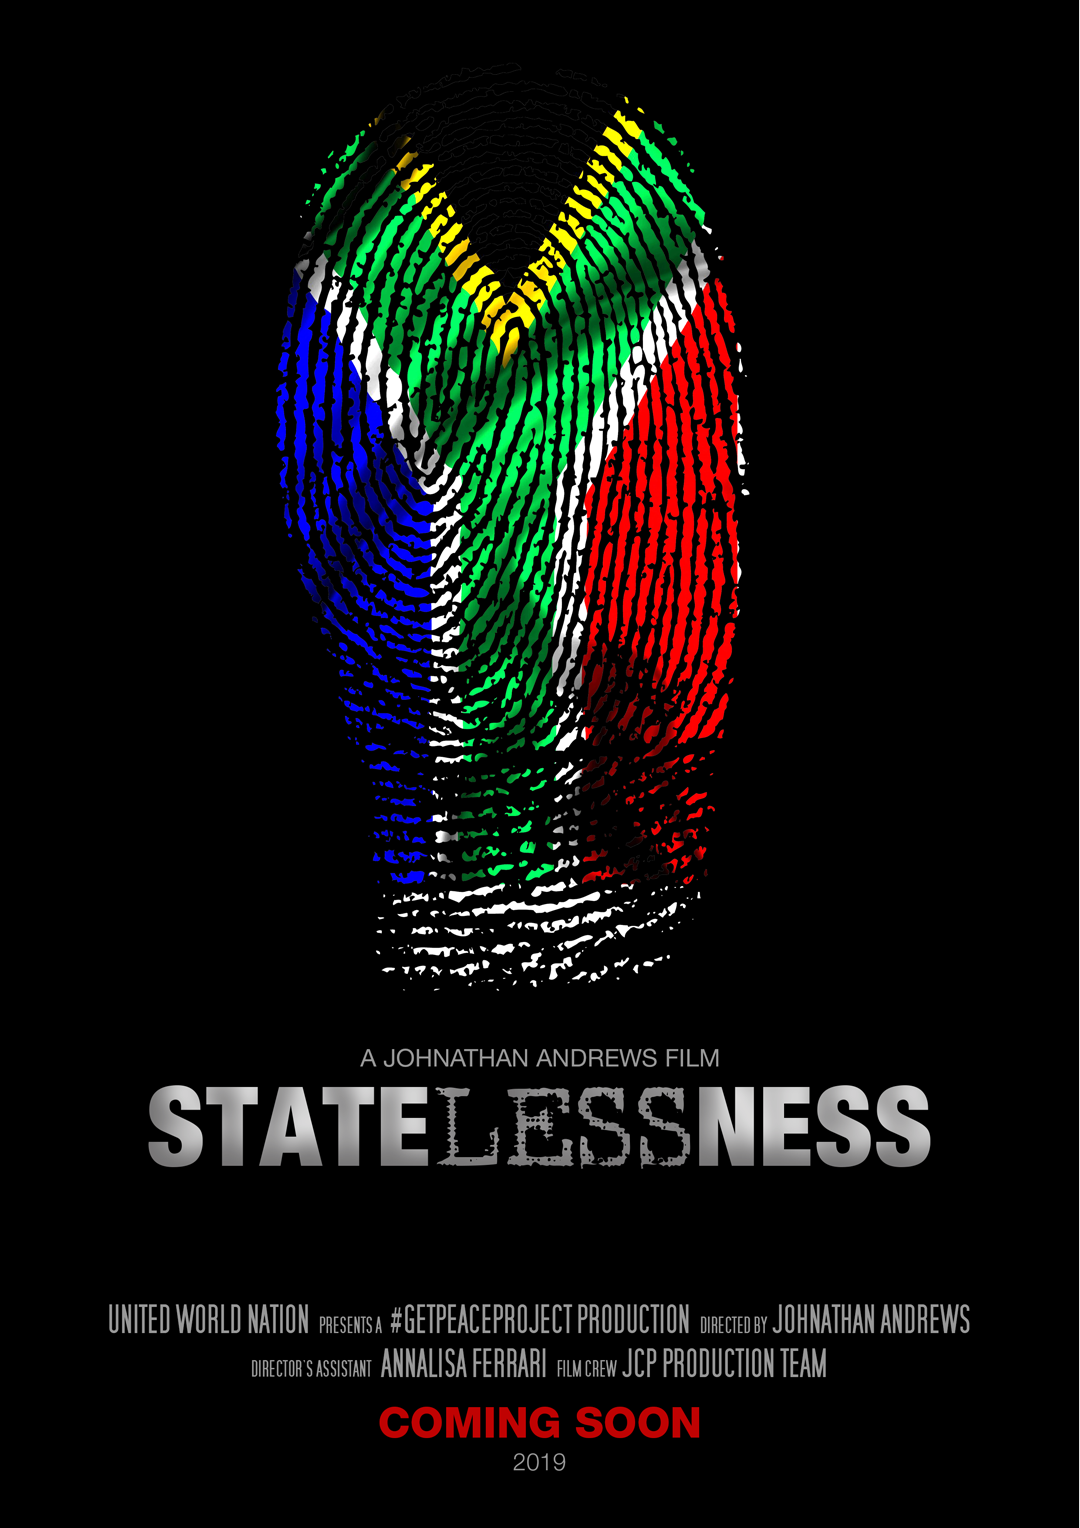 Statelessness Documentary Film Series